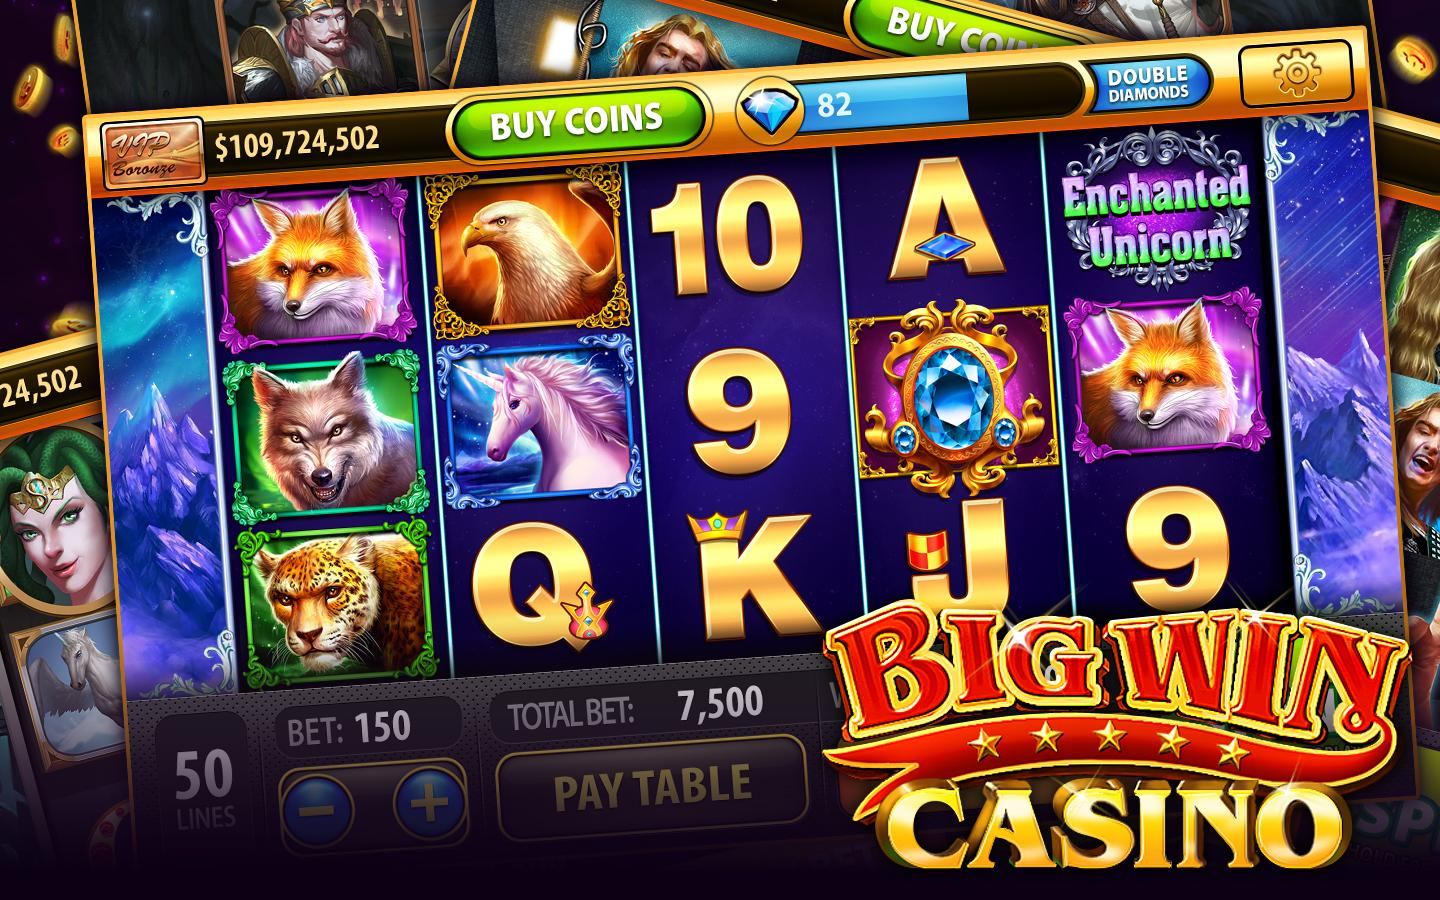 The Big Easy™ Slot Machine Game to Play Free in Spielos Online Casinos